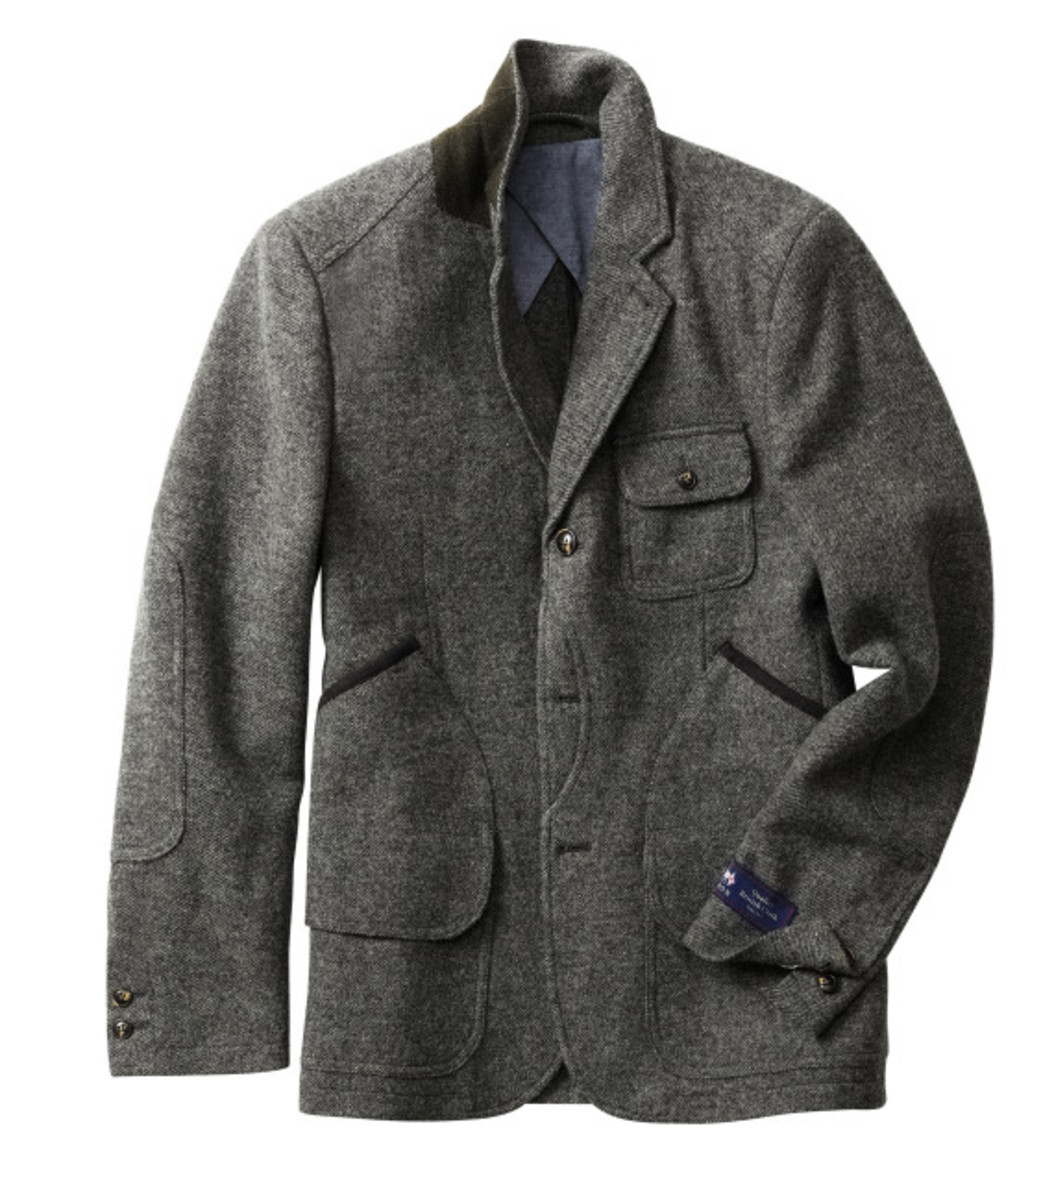 mauritz-archive-collection-at-hm-16